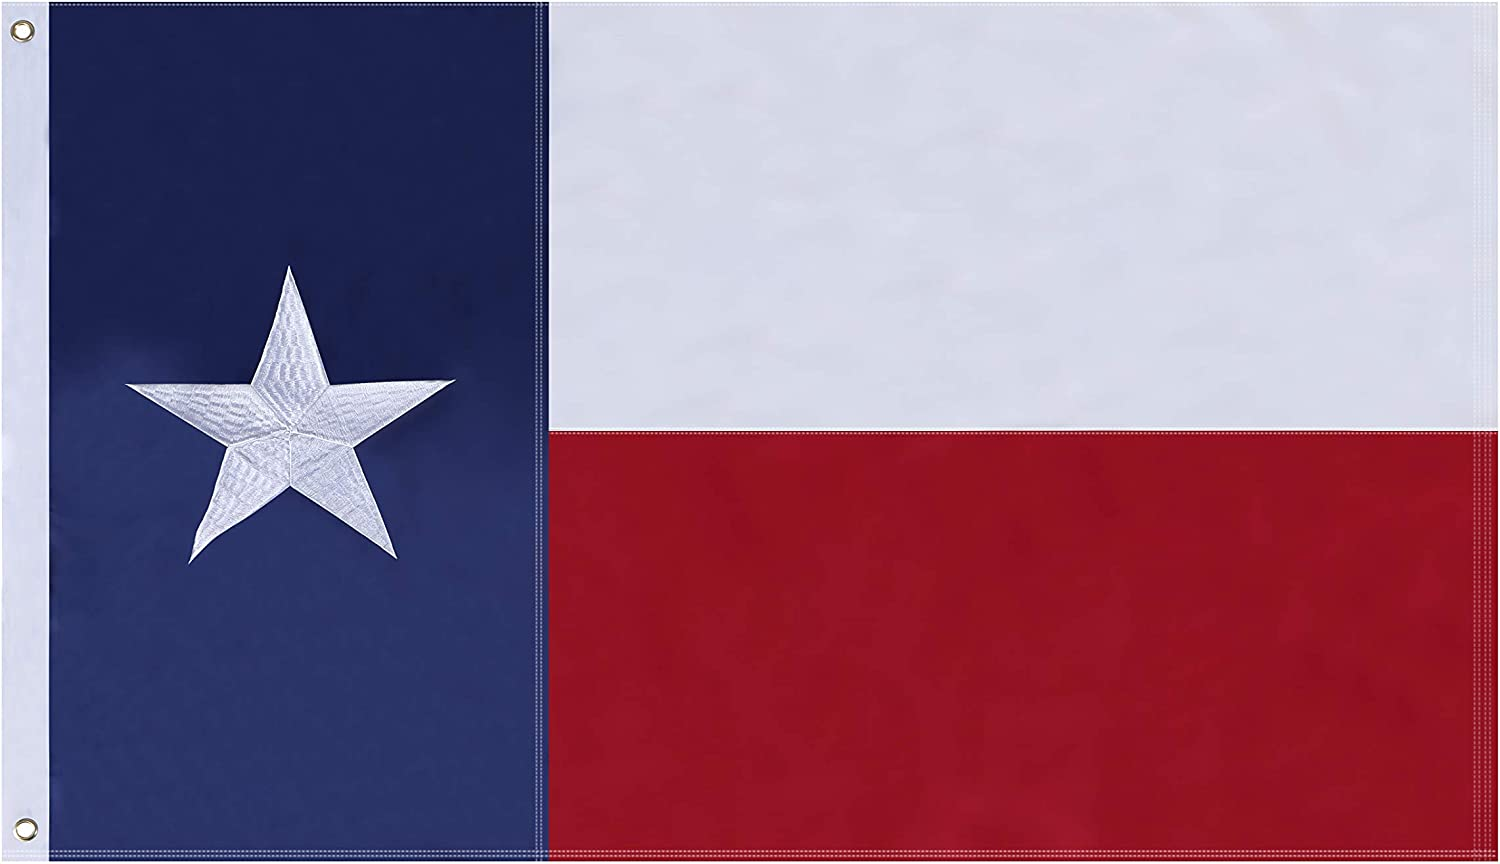 NuLink Texas State Flag 6x10 Ft Embroidered Stars Sewn Stripes Brass Grommets Flag 210D Oxford Nylon for Indoor Outdoor